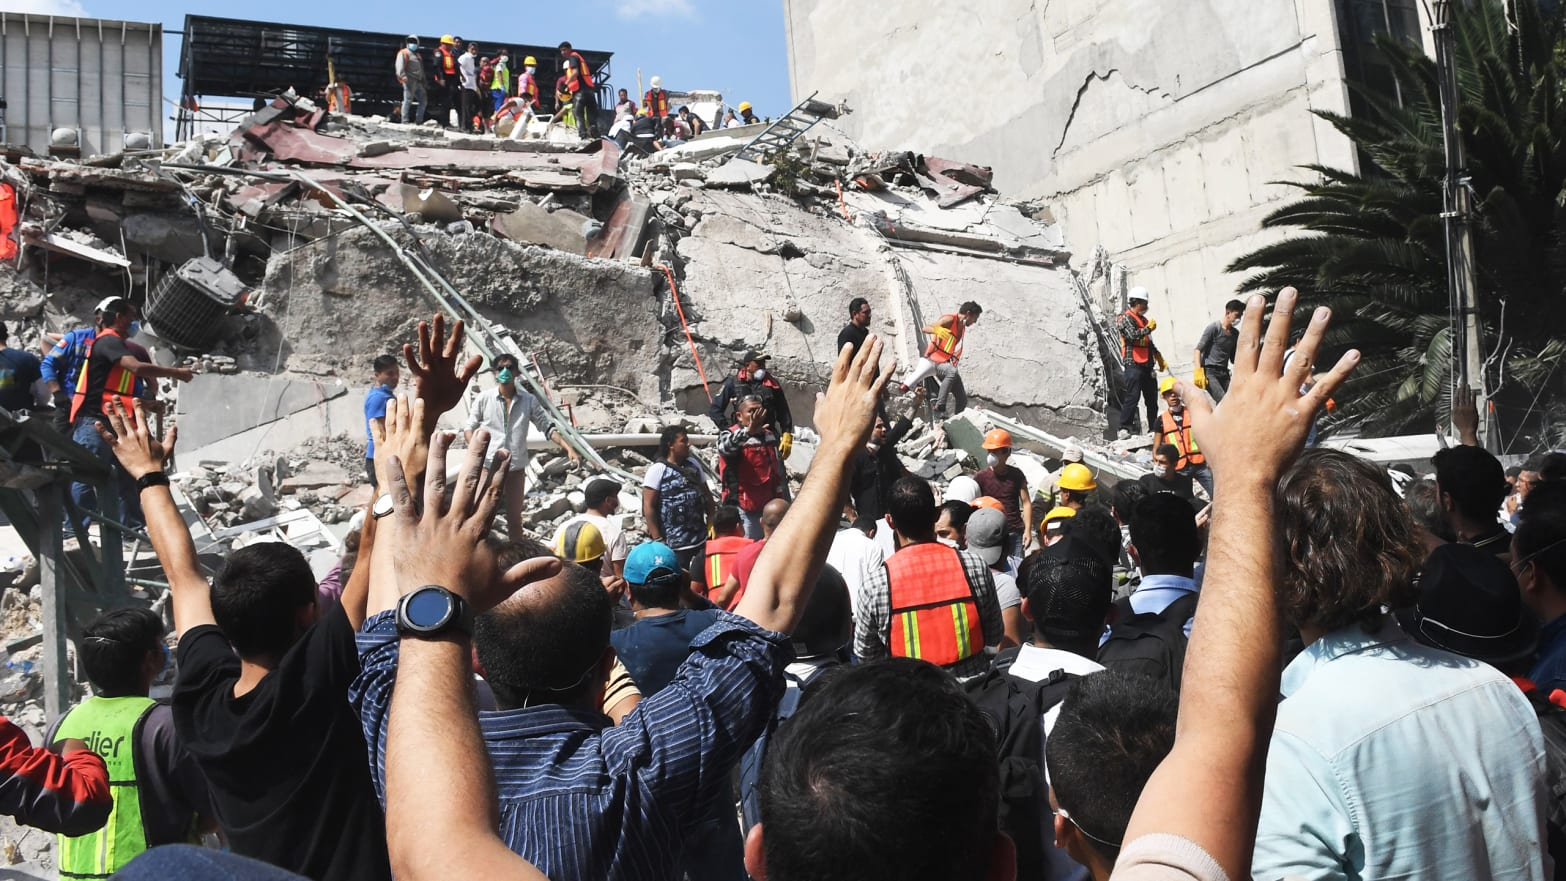 Rescuers search for survivors amid the rubble of a collapsed building after a powerful quake in Mexico City